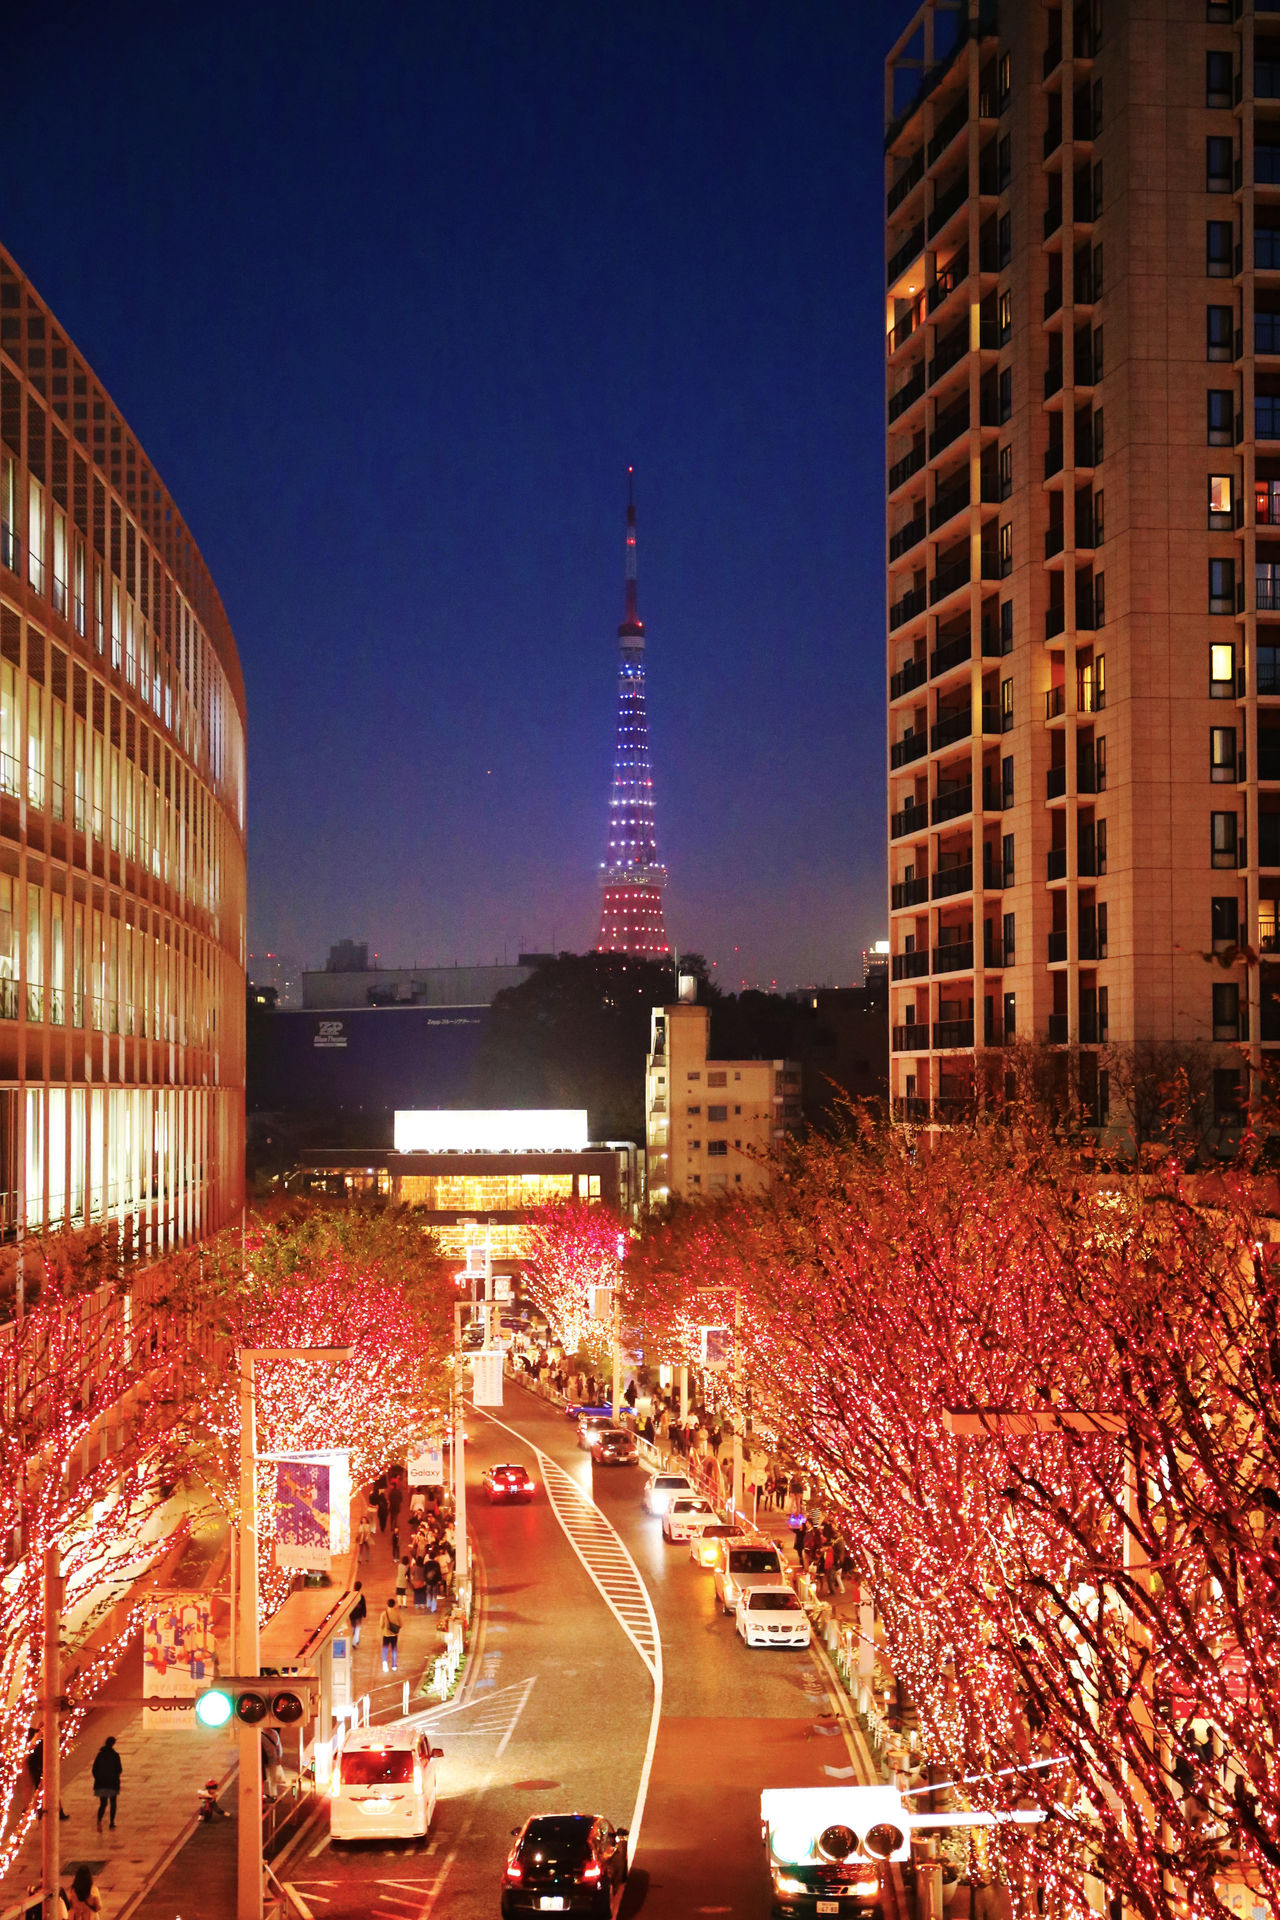 2015  Architecture Building Exterior Car Christmas City Illuminated Japan Night Outdoors Red Road Roppongi Skyscraper Tokyo Tokyo Tower イルミネーション 東京タワー